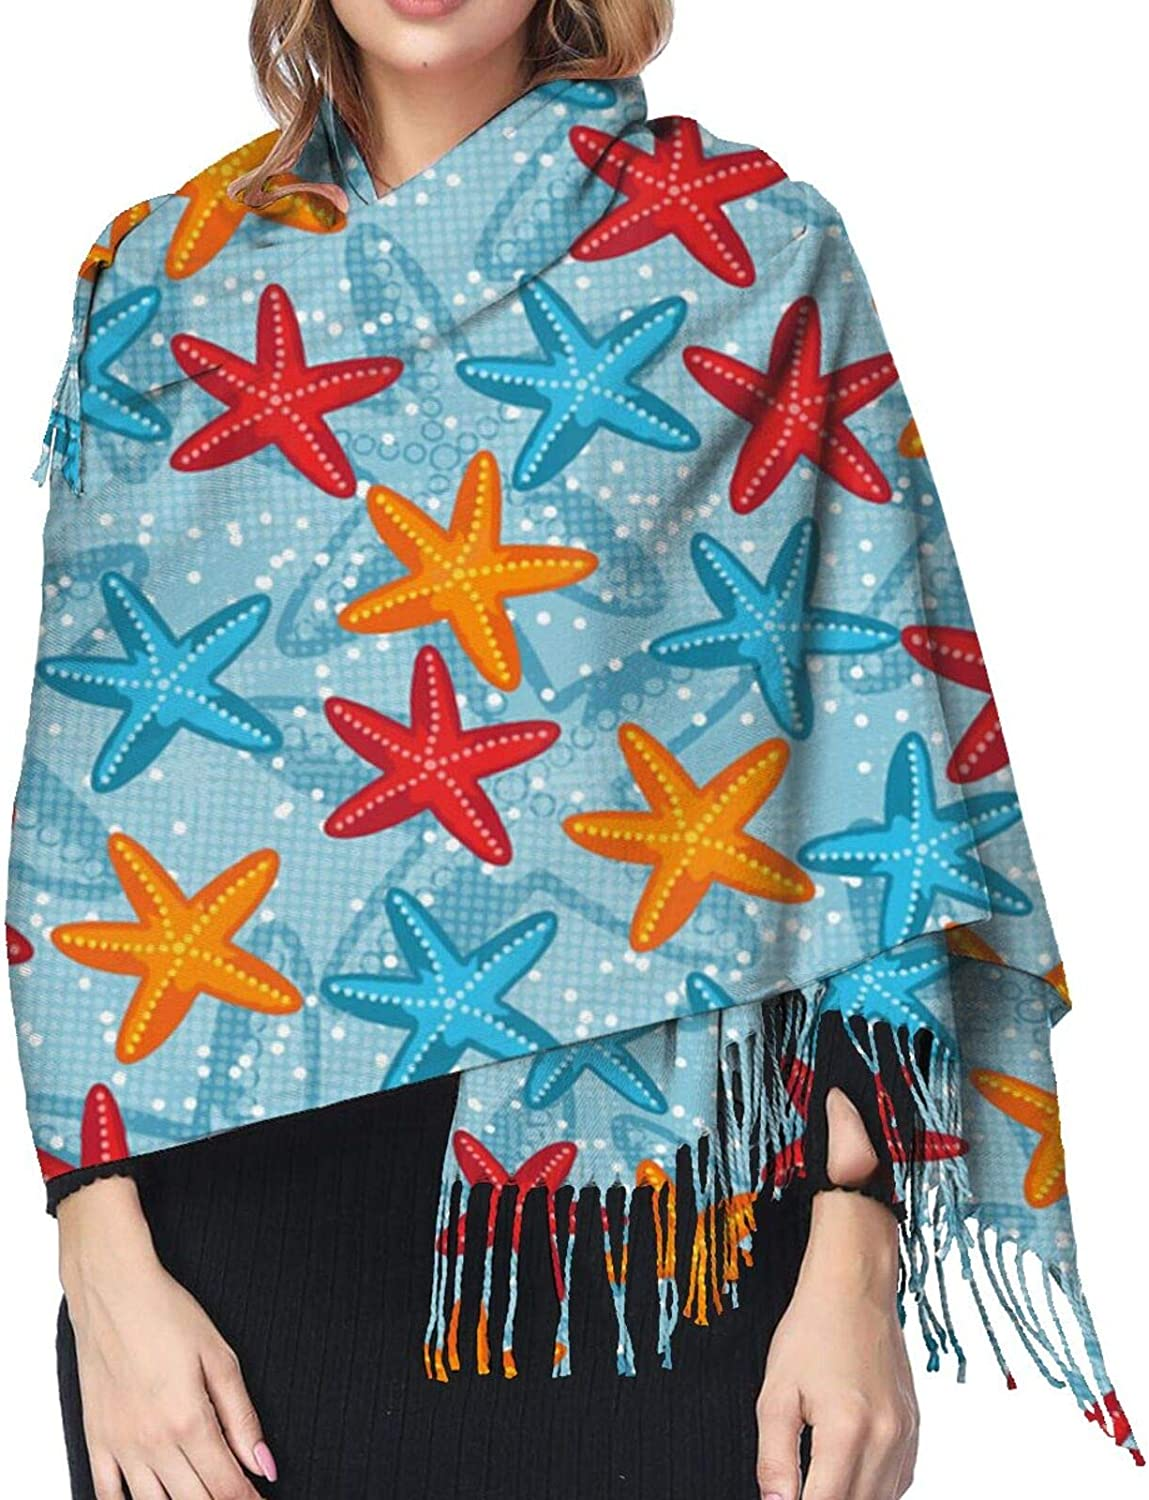 Beautiful Starfish Cashmere Scarf Fashion Long Shawl with Fringed Edges Super Soft Warm Cozy Light Blanket Scarves Wrap Ultra Warm Winter Accessories Gifts For Men And Women